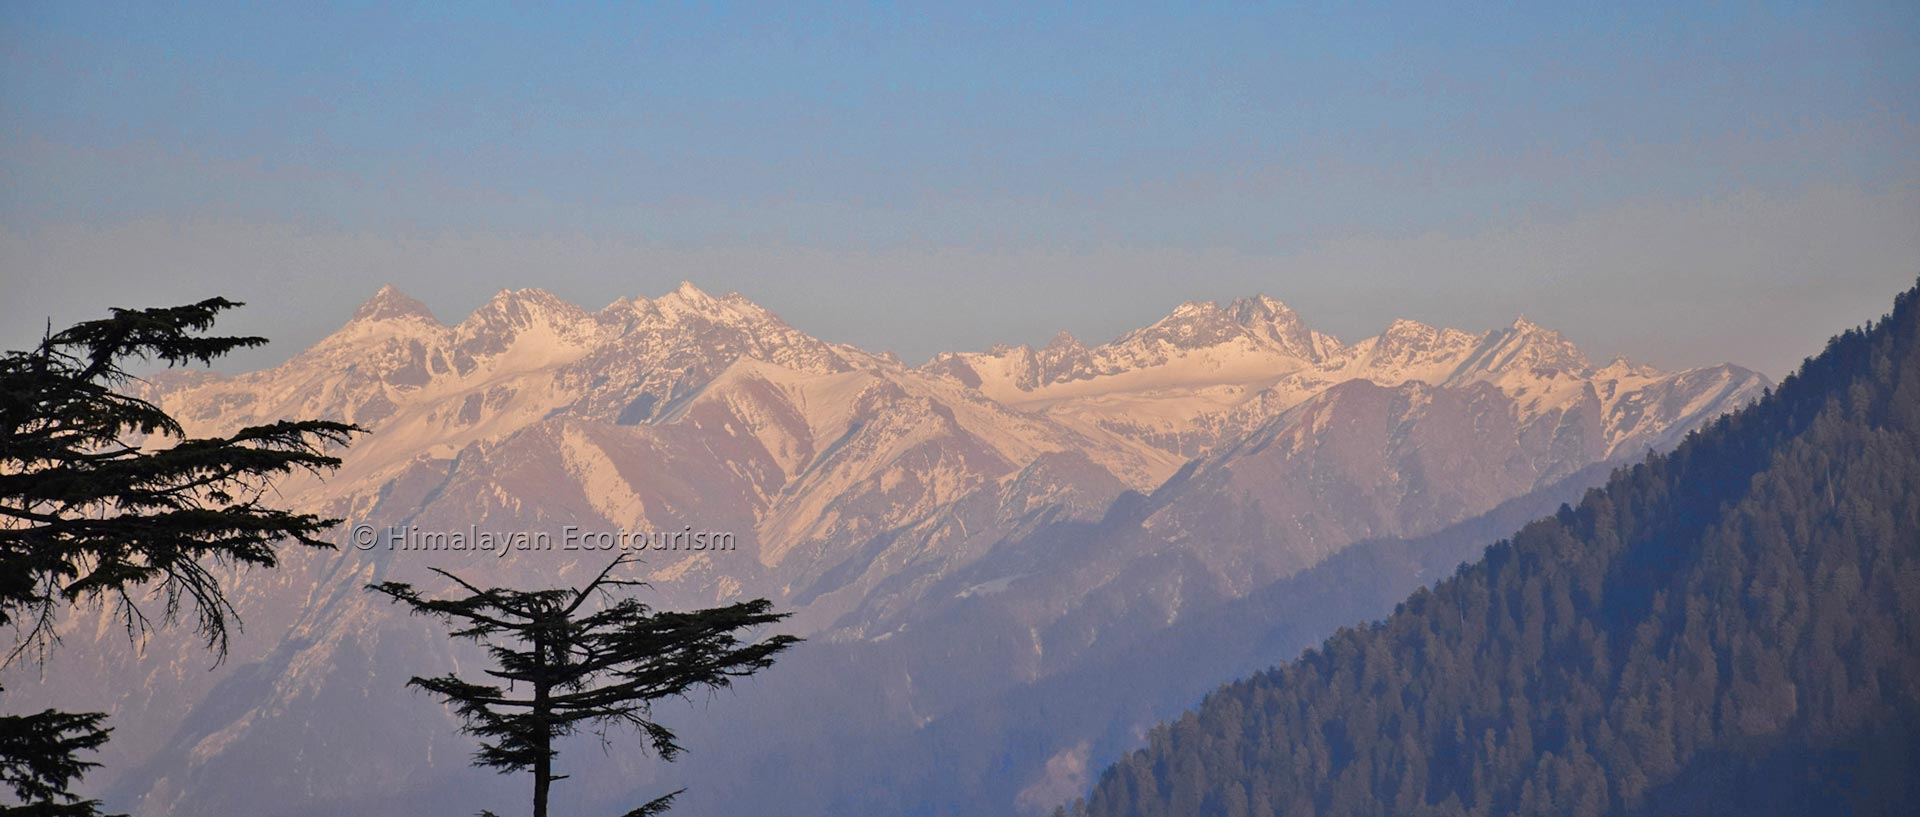 Best time to go to the Great Himalayan National Park GHNP